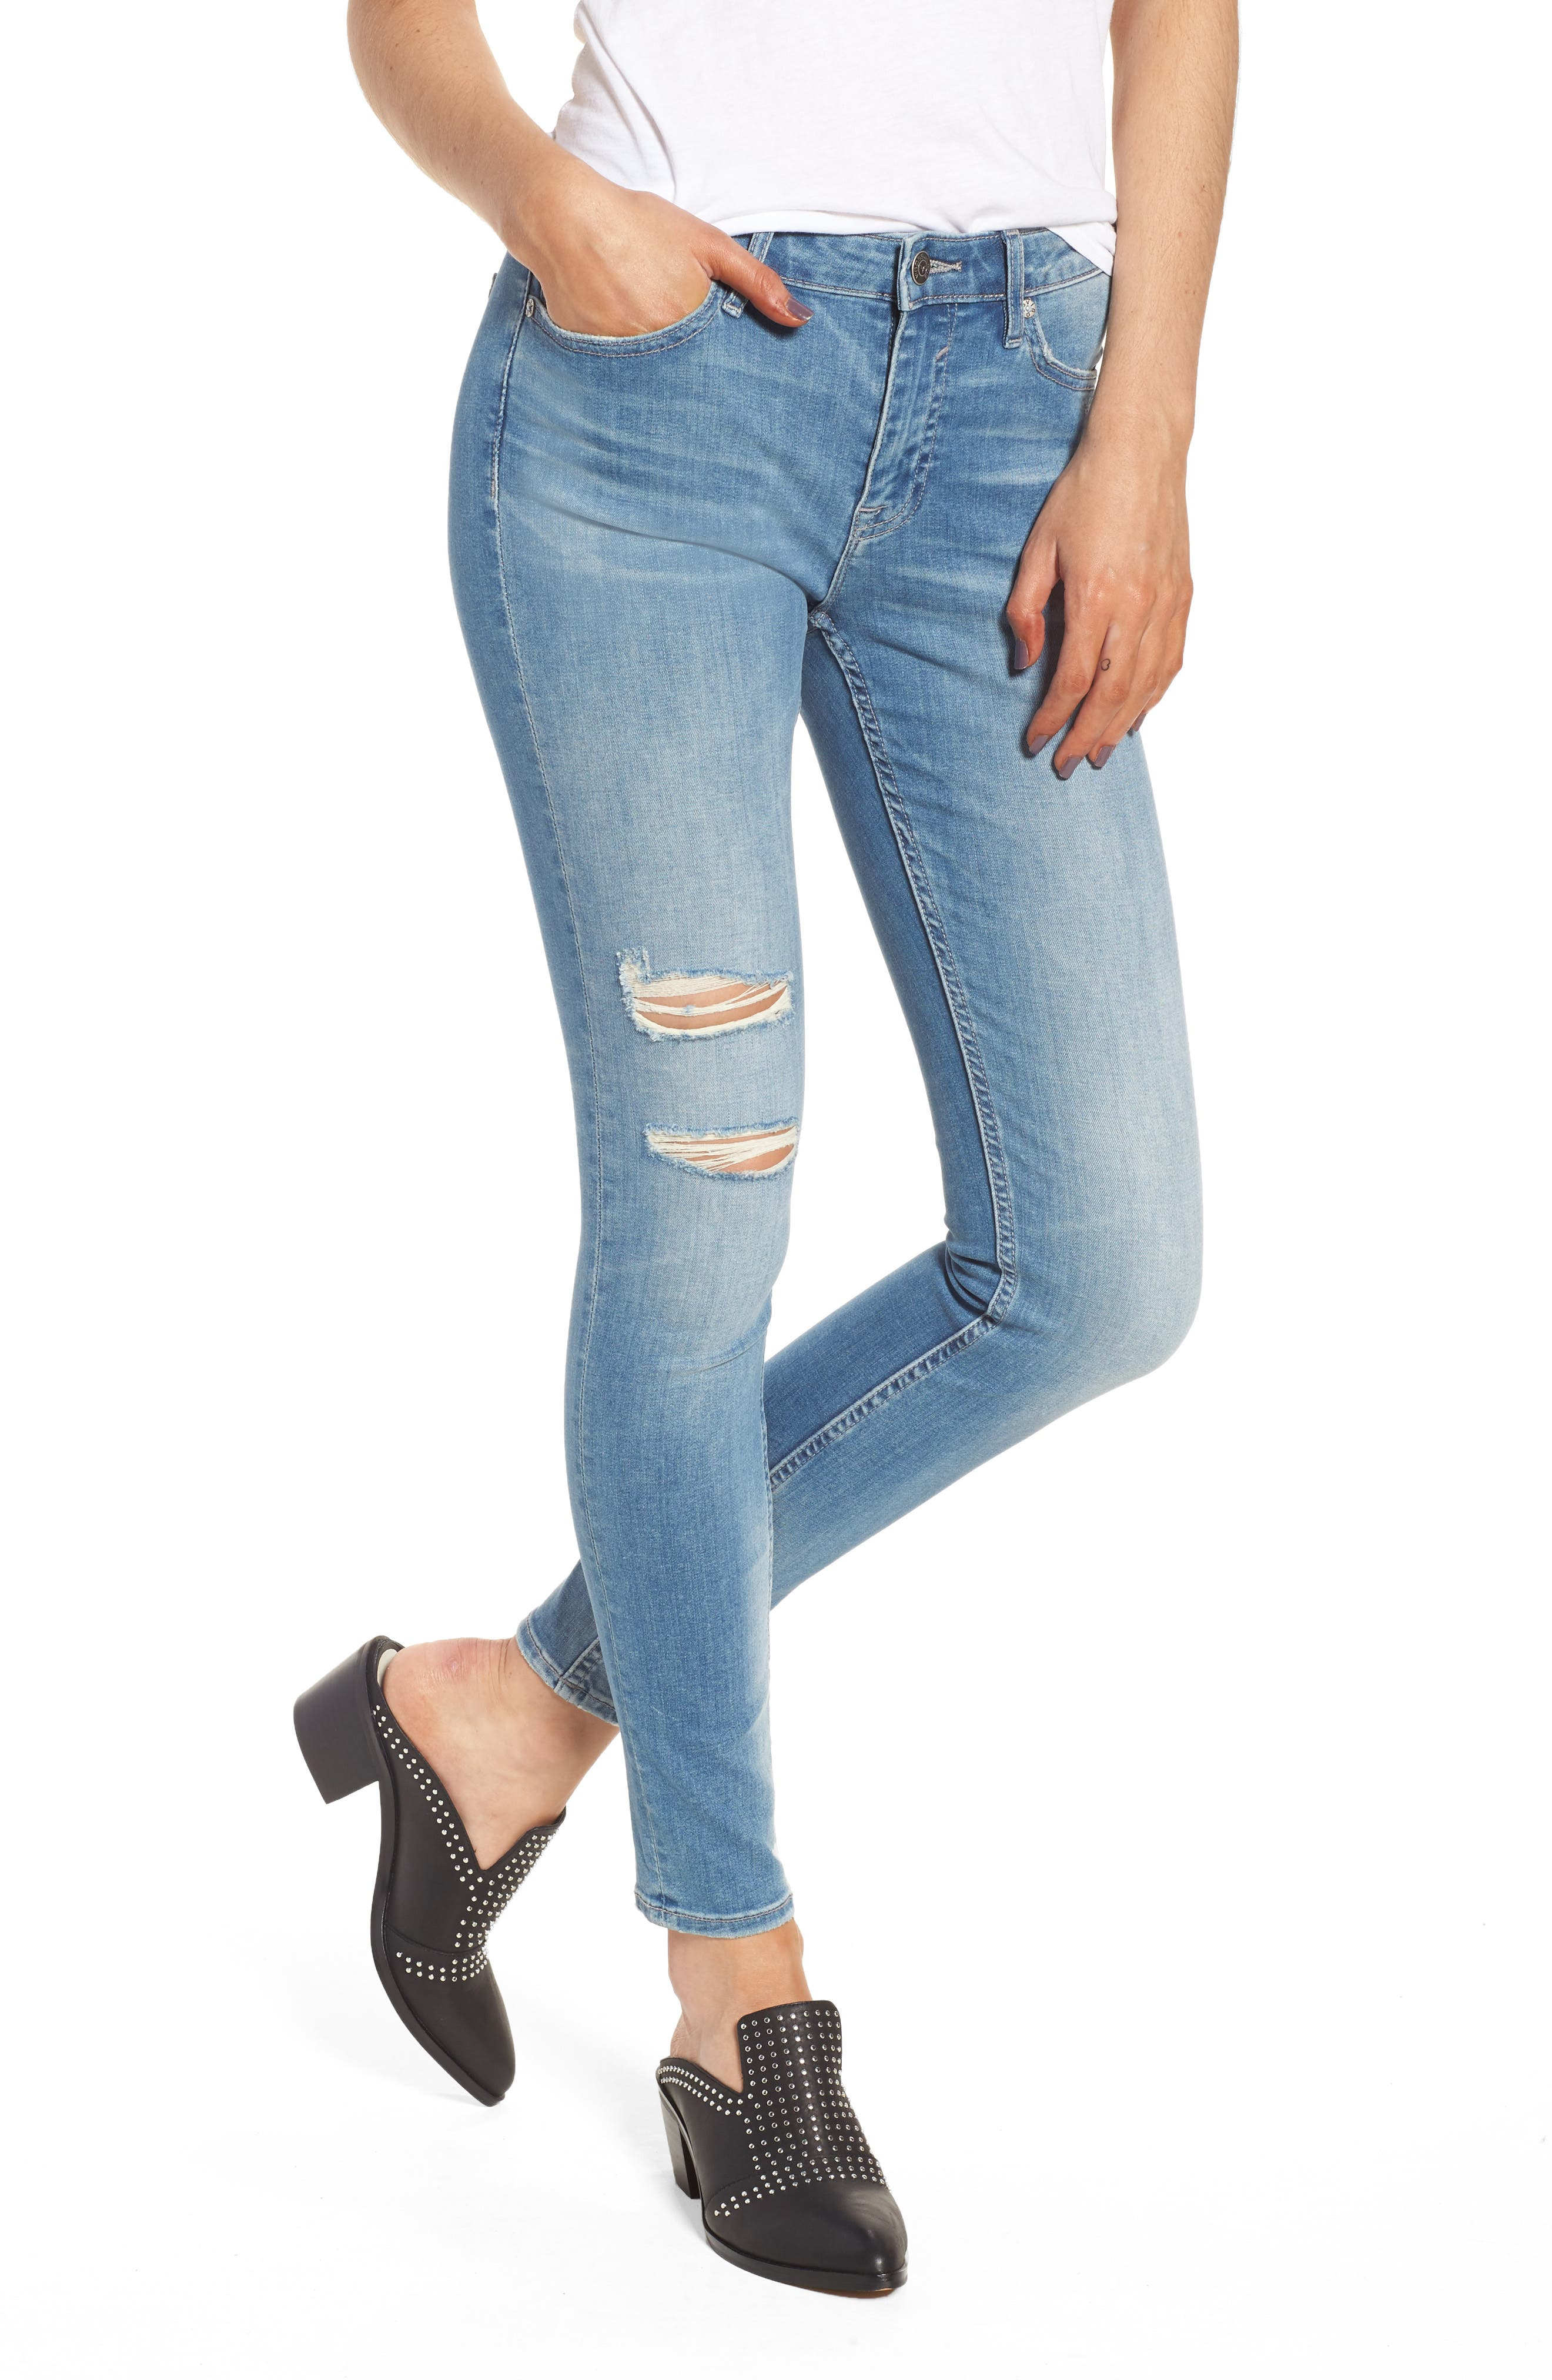 Marley Ripped Skinny Jeans,                         Main,                         color, Light Wash